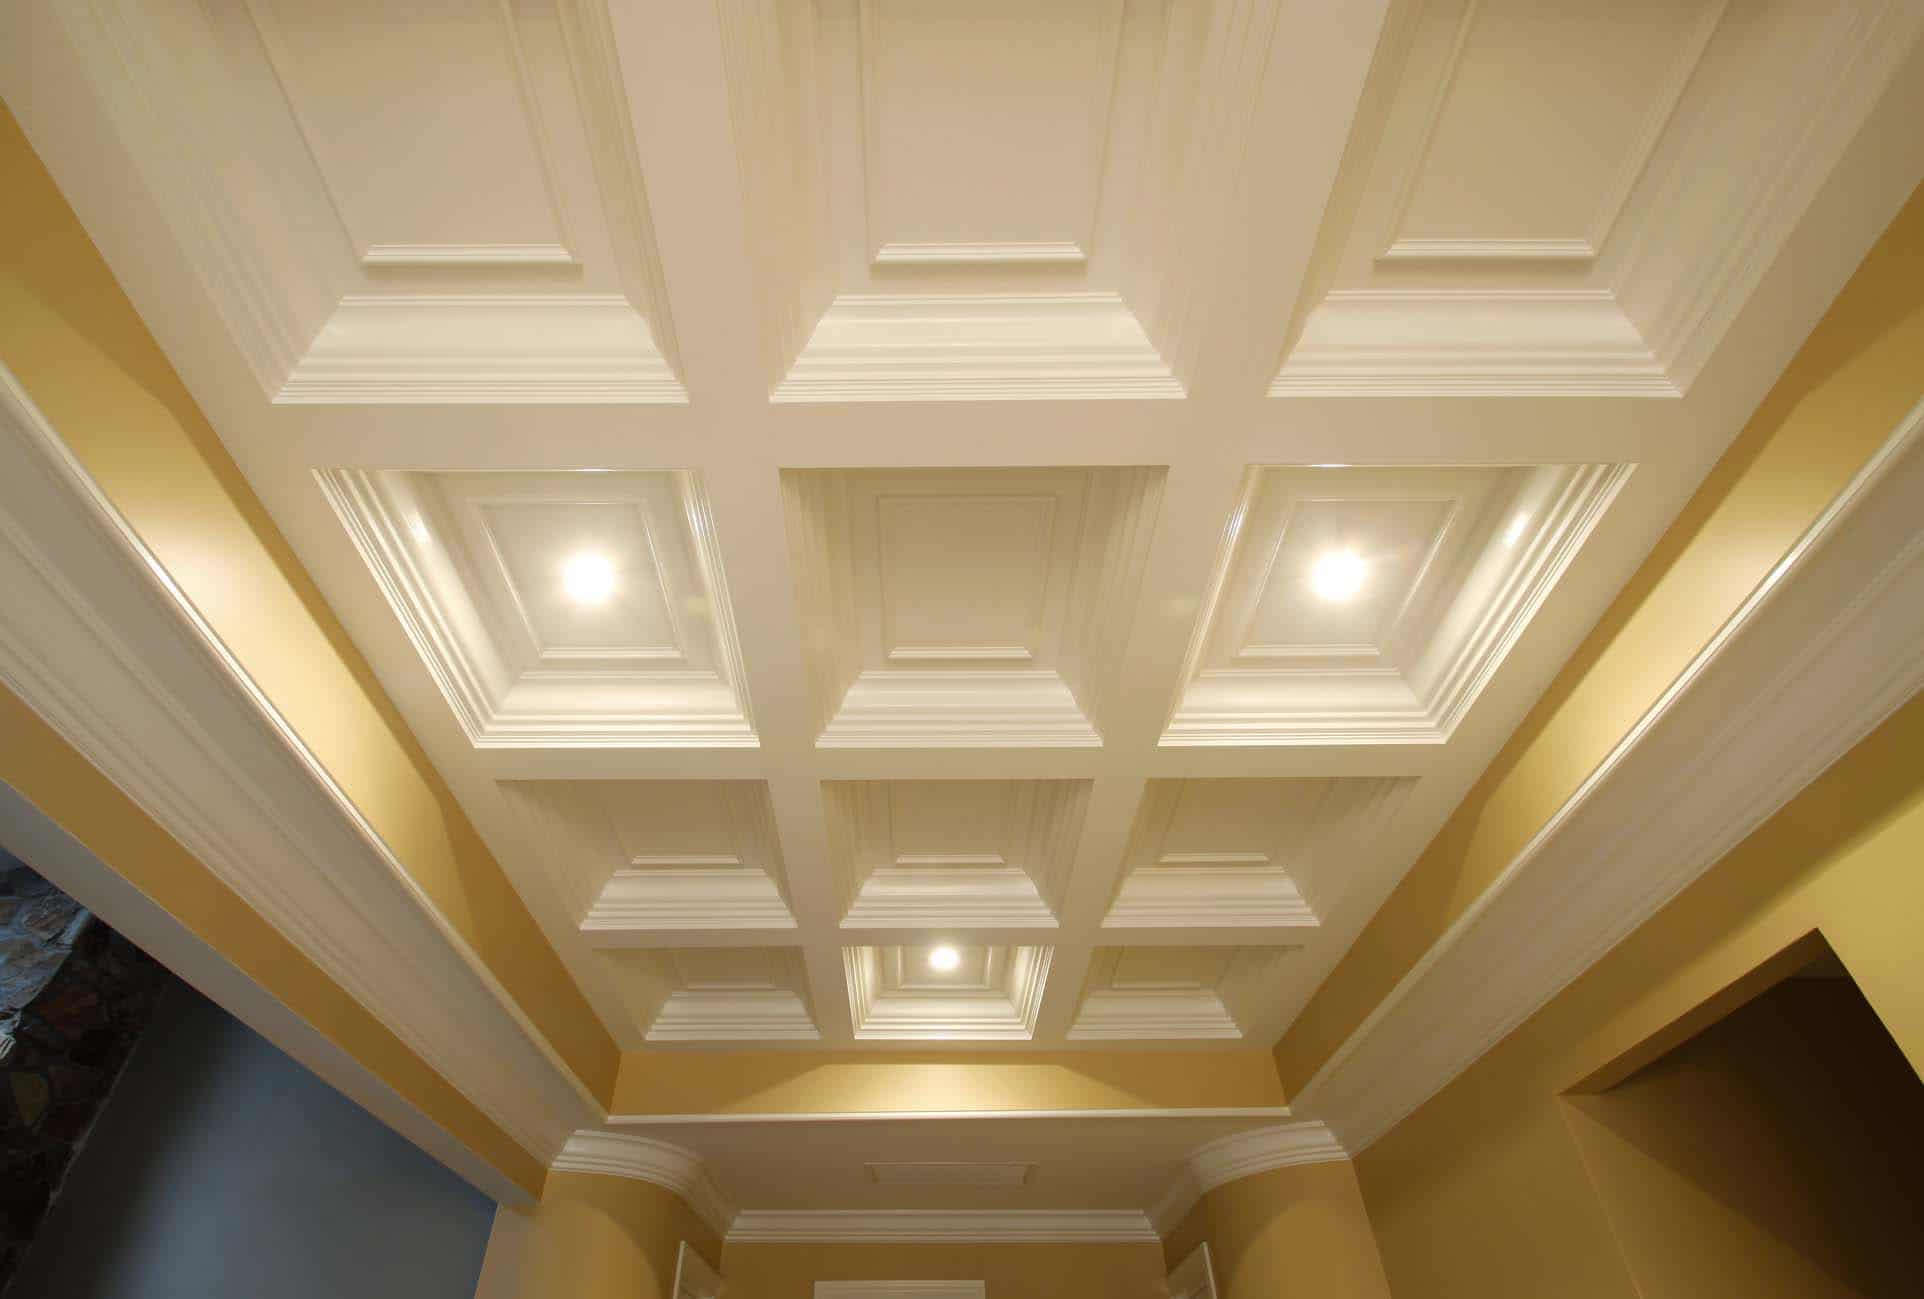 Coffered ceiling design ceiling beams coffer ceiling for Ceiling styles ideas